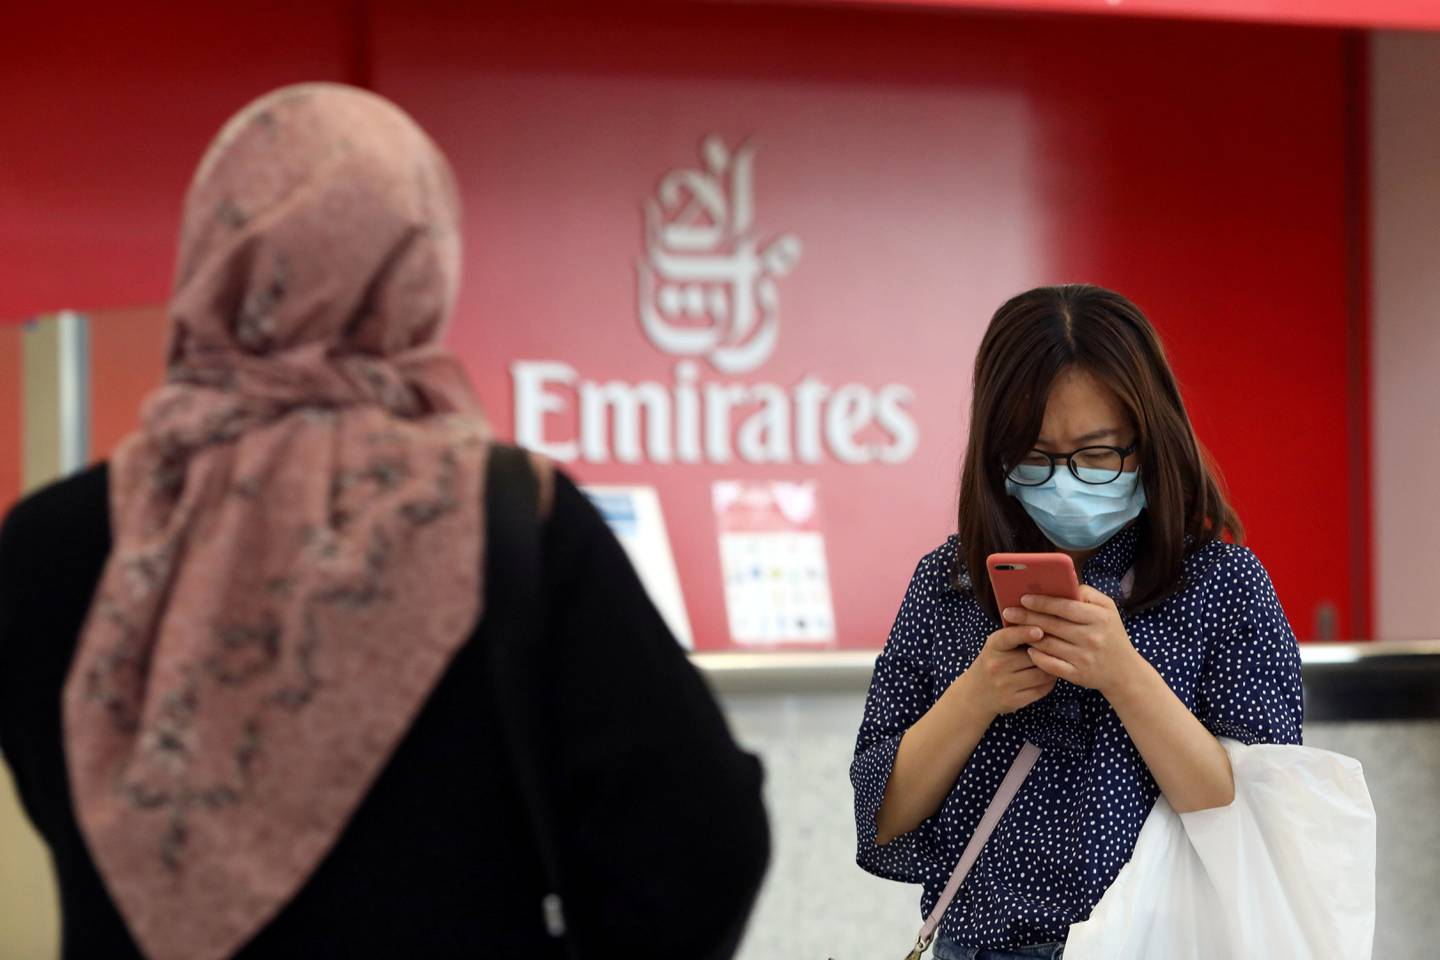 FILE PHOTO: A traveller wears a mask at the Dubai International Airport, after the UAE's Ministry of Health and Community Prevention confirmed the country's first case of coronavirus, in Dubai, United Arab Emirates January 29, 2020. REUTERS/Christopher Pike - RC2JPE94N0K9/File Photo